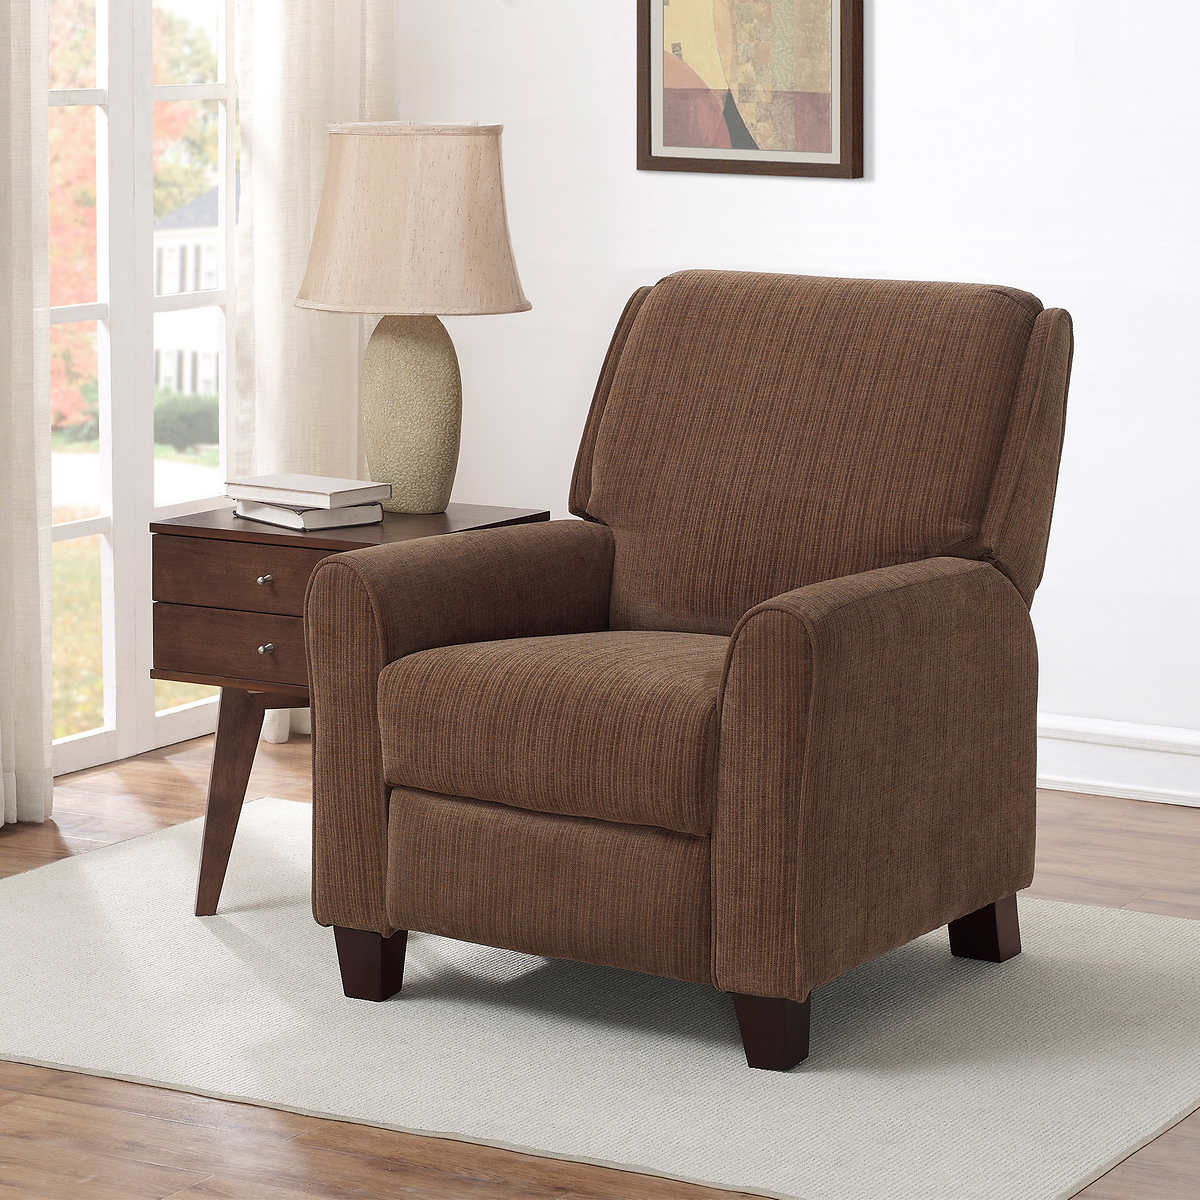 Conway Fabric Pushback Recliner - Recliners Costco